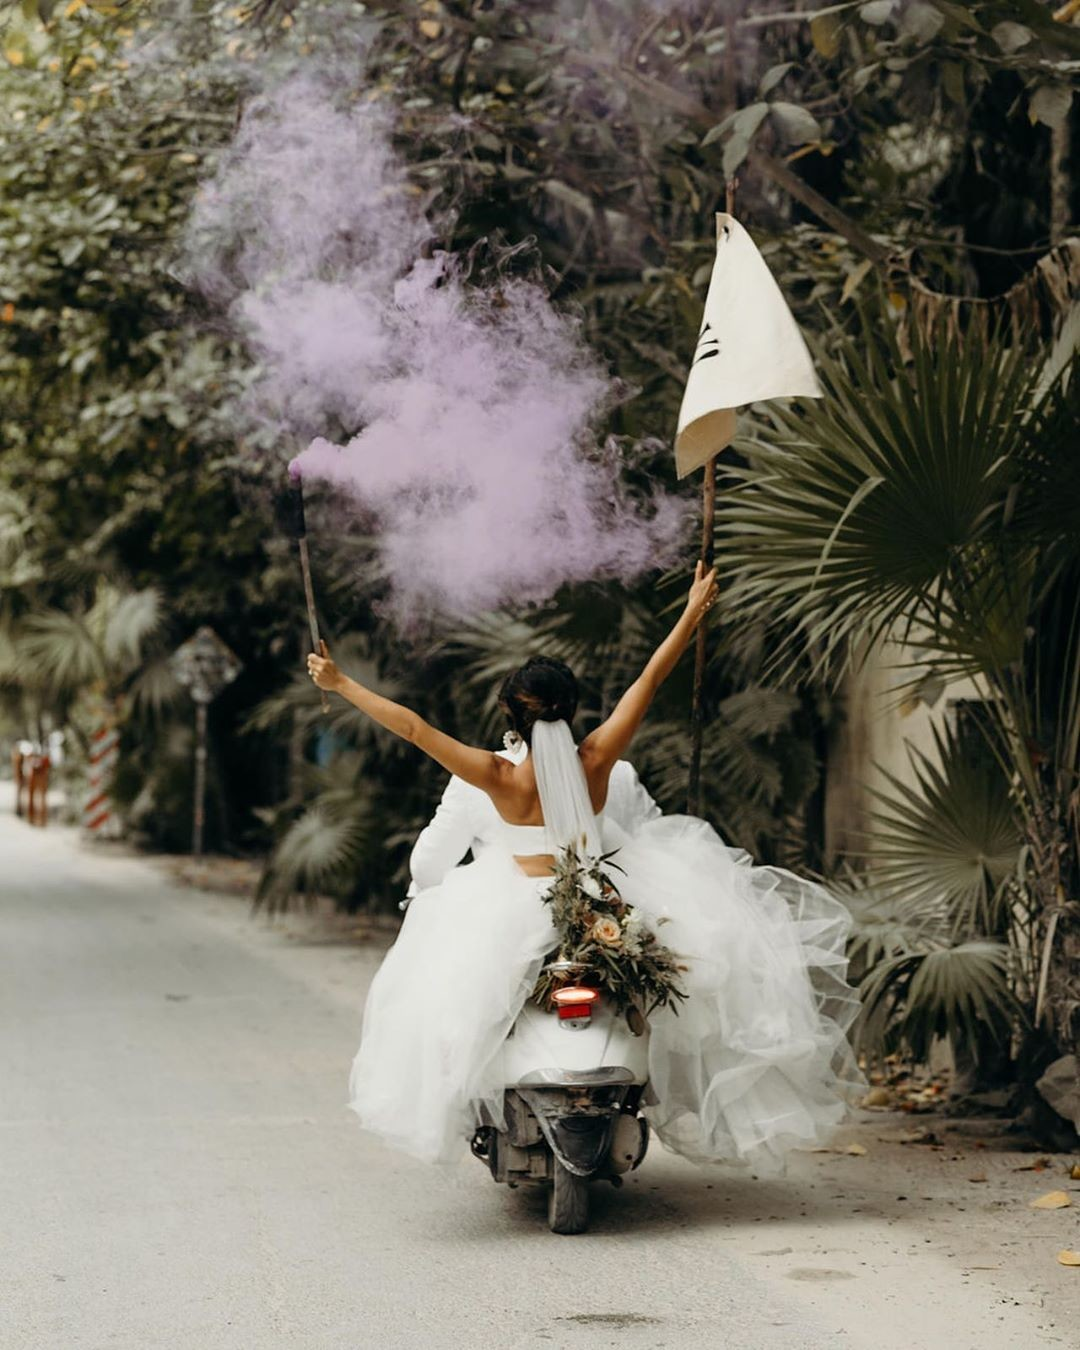 Tulum • The bridal gown• The ride • The colored smoke bomb • The flowers • The YAY flag • The most perfect bride and groom